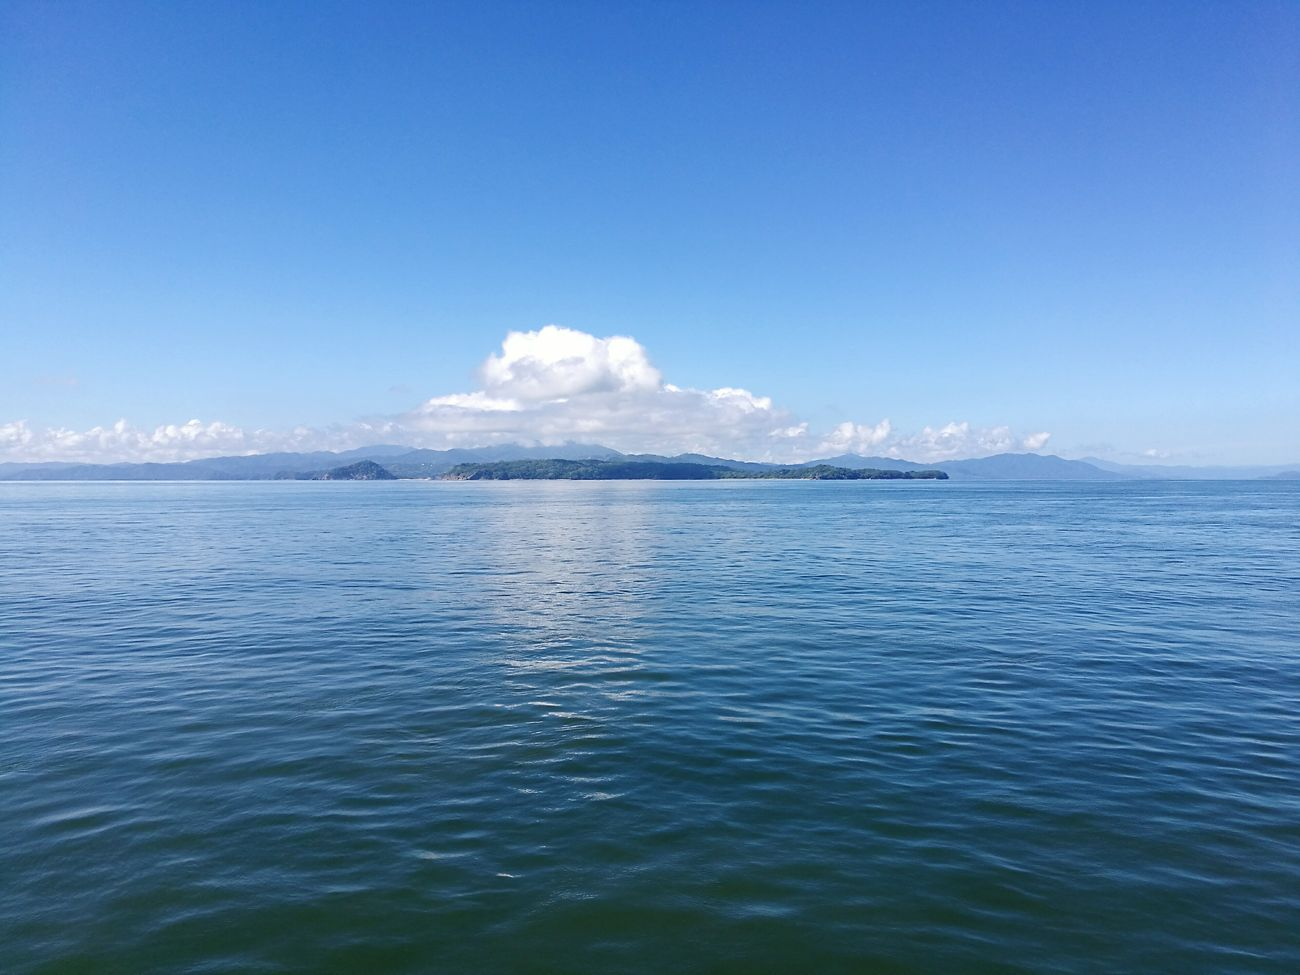 Sea Sky Blue Cloud - Sky Horizon Over Water Beauty In Nature Outdoors Scenics Water No People Day Outdoor Photography Puntarenas Costa Rica Costa Rica❤ No People Outdoors Oceano Pacifico Golfo De Nicoya